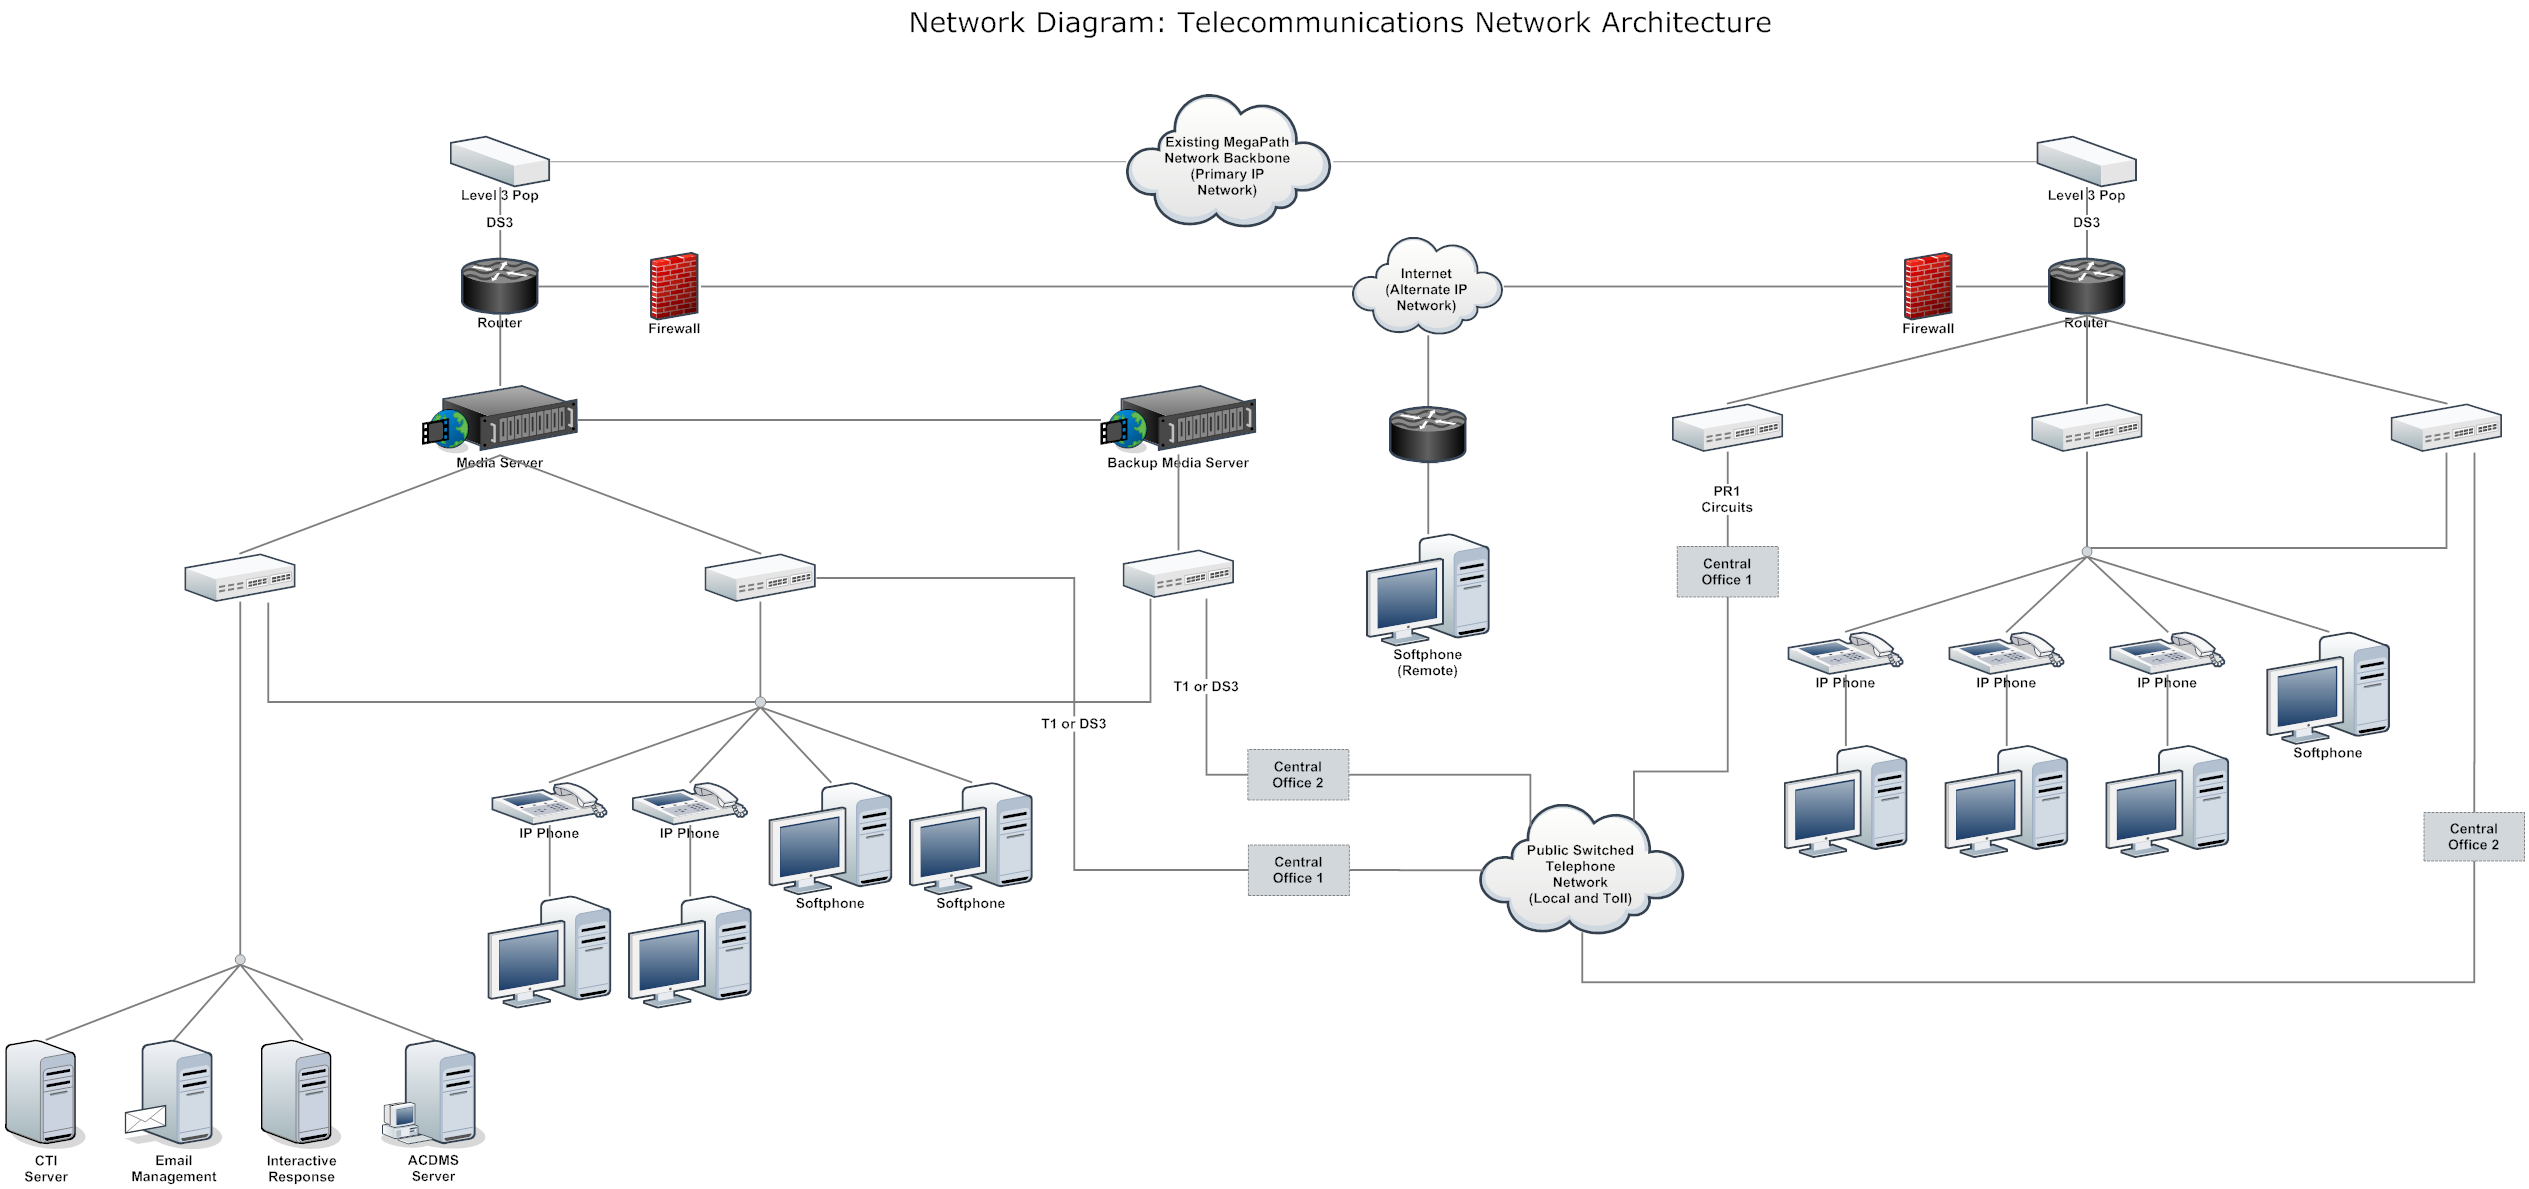 hight resolution of network diagram example telecommunnications network architecture